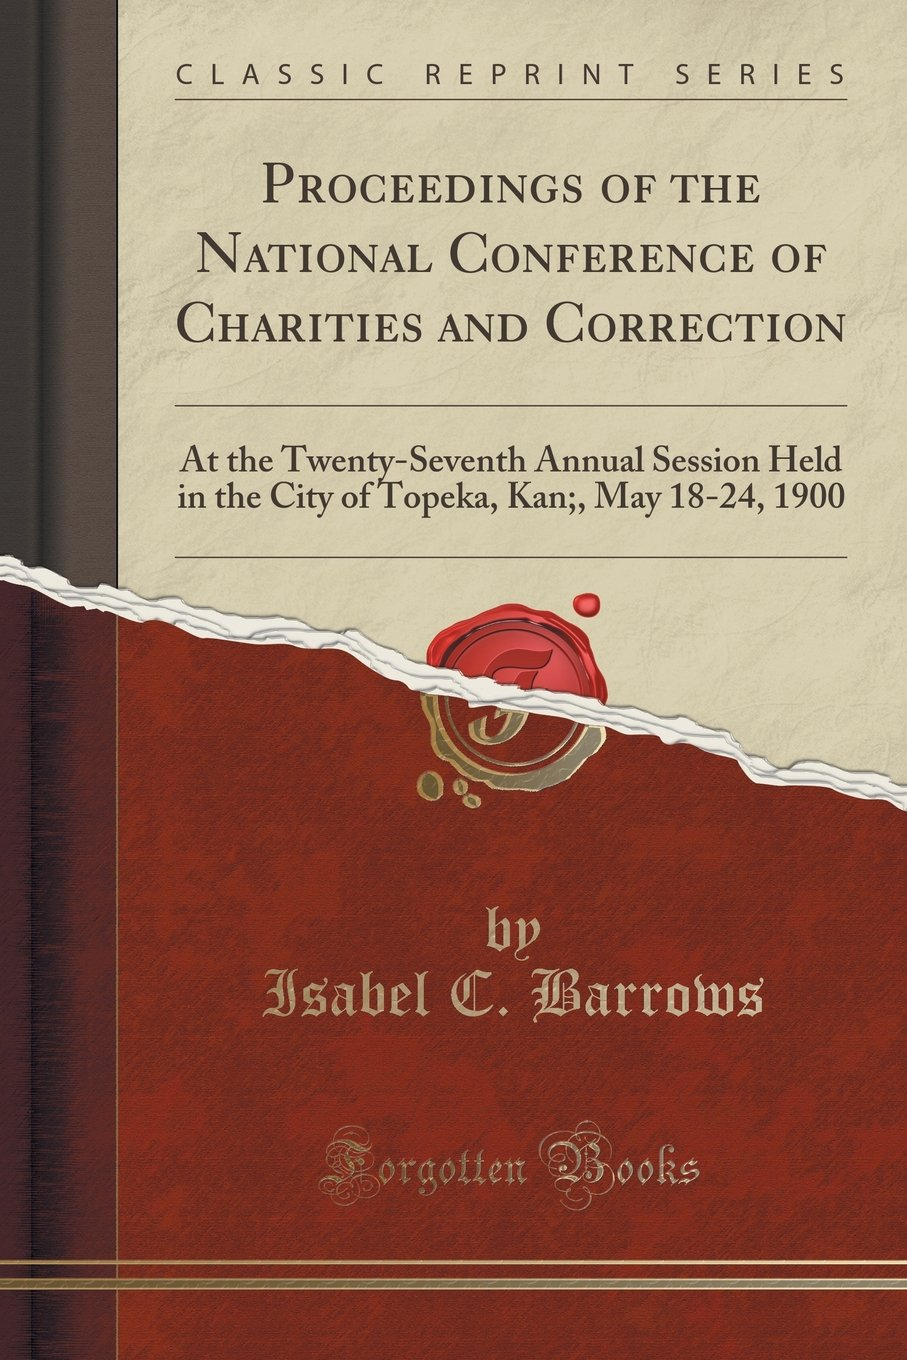 Download Proceedings of the National Conference of Charities and Correction: At the Twenty-Seventh Annual Session Held in the City of Topeka, Kan;, May 18-24, 1900 (Classic Reprint) pdf